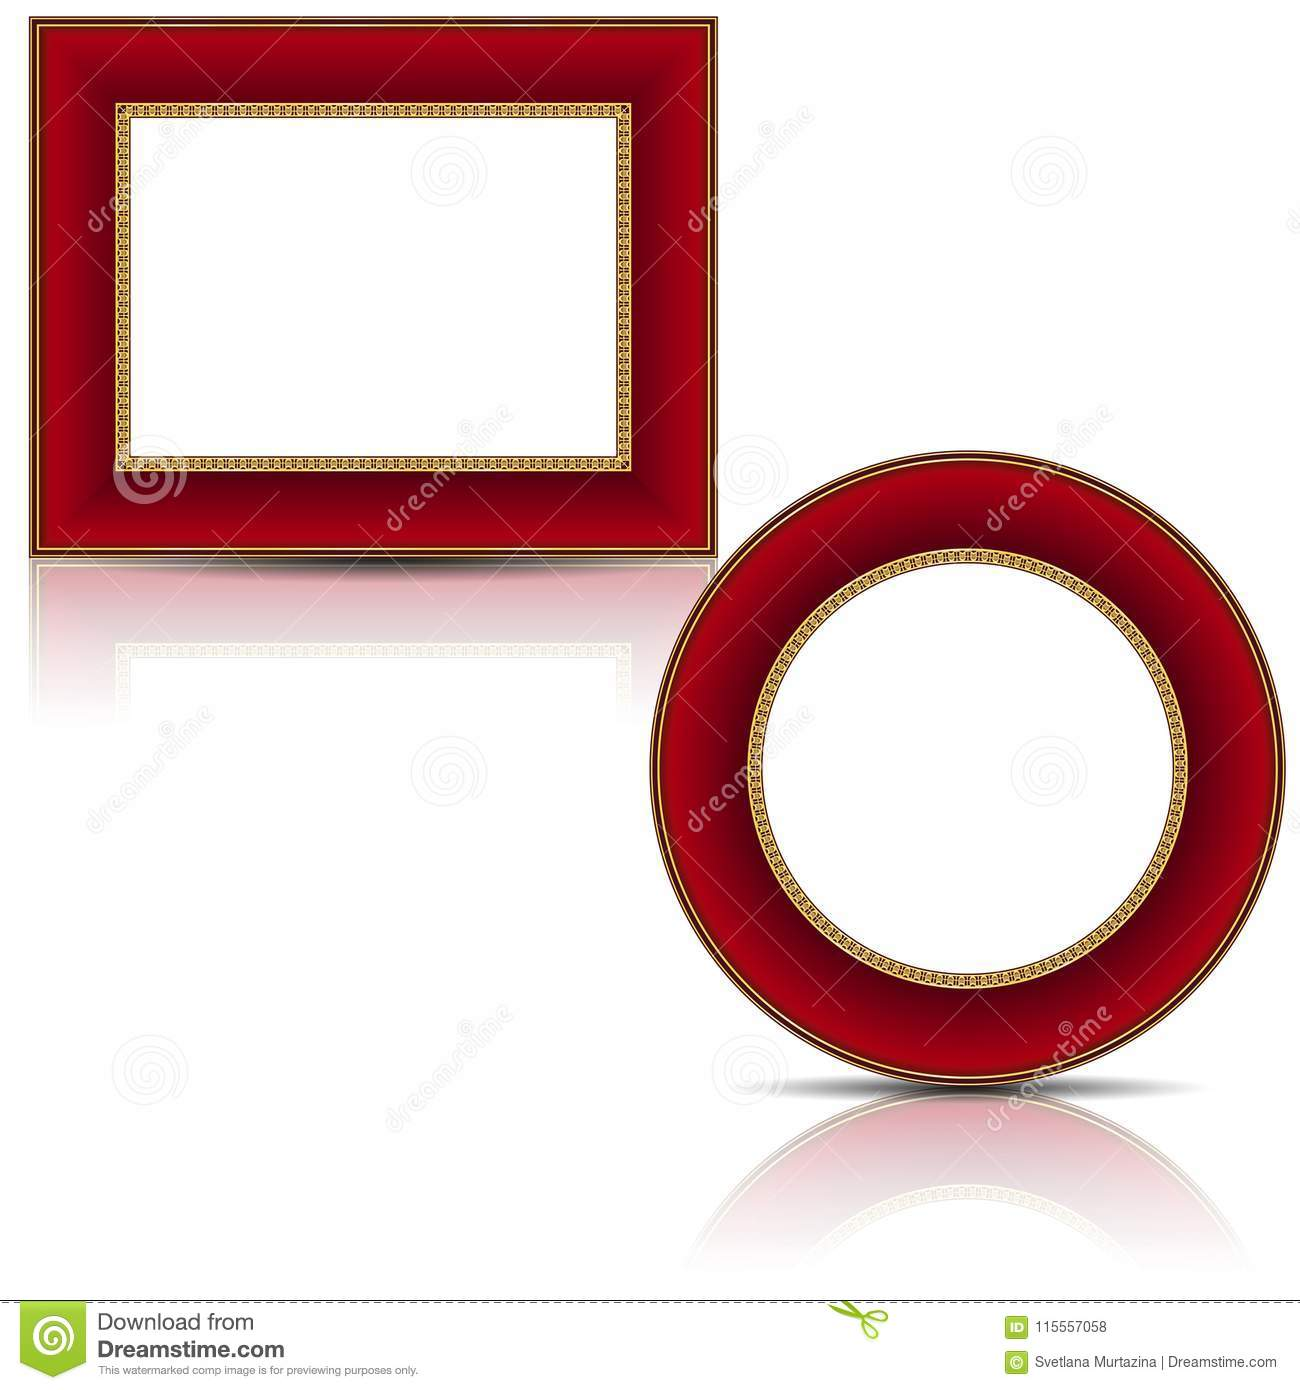 Frames Red And Gold Color With Shadow Stock Vector Illustration Of